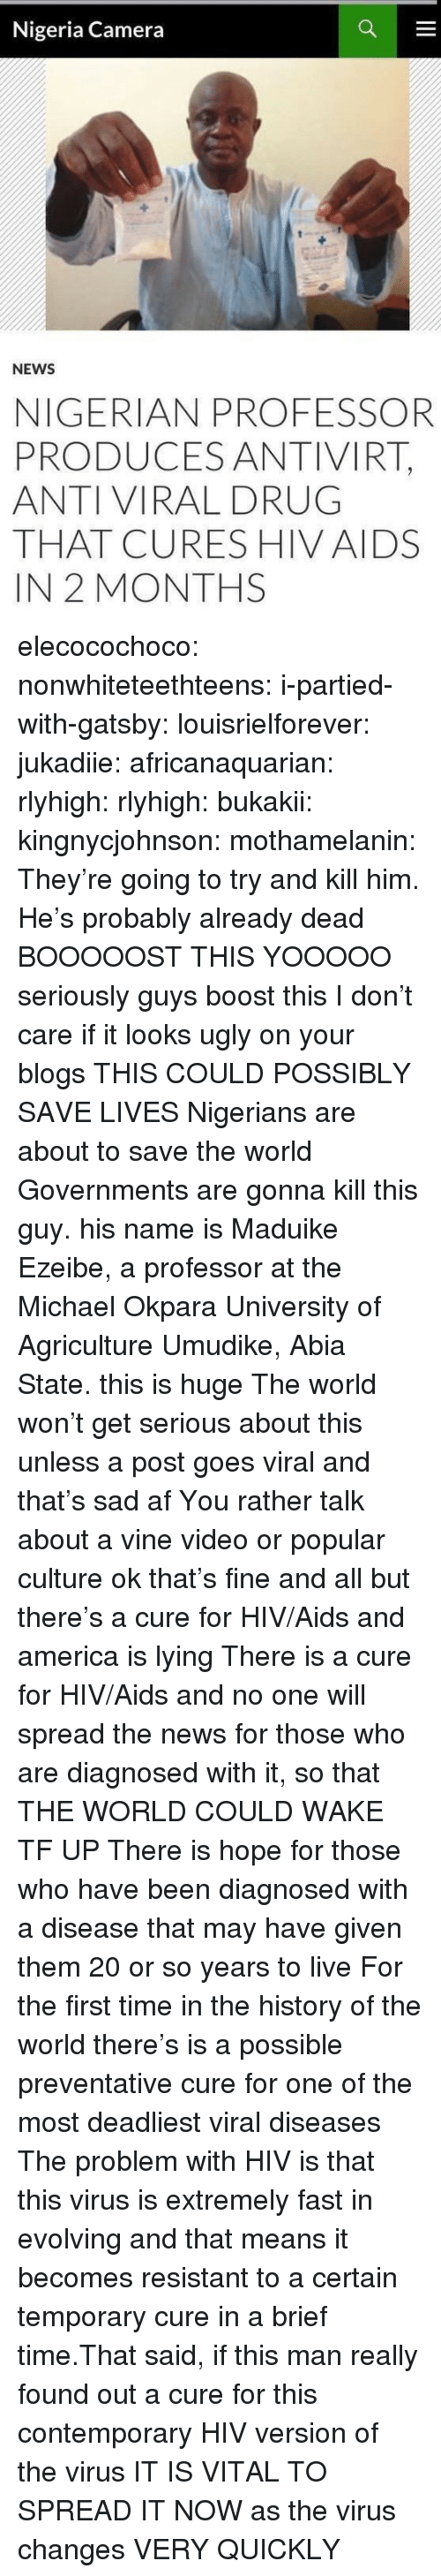 Seriously Guys: Nigeria Camera  NEWS  NIGERIAN PROFESSOR  PRODUCES ANTIVIRT,  ANTI VIRAL DRUG  THAT CURES HIV AIDS  IN 2 MONTHS elecocochoco:  nonwhiteteethteens:  i-partied-with-gatsby:  louisrielforever:  jukadiie:  africanaquarian:  rlyhigh:  rlyhigh:  bukakii:  kingnycjohnson:  mothamelanin:  They're going to try and kill him.  He's probably already dead   BOOOOOST THIS  YOOOOO  seriously guys boost this I don't care if it looks ugly on your blogs THIS COULD POSSIBLY SAVE LIVES  Nigerians are about to save the world   Governments are gonna kill this guy.  his name is Maduike Ezeibe, a professor at the Michael Okpara University of Agriculture Umudike, Abia State. this is huge  The world won't get serious about this unless a post goes viral and that's sad af You rather talk about a vine video or popular culture ok that's fine and all but there's a cure for HIV/Aids and america is lying There is a cure for HIV/Aids and no one will spread the news for those who are diagnosed with it, so that THE WORLD COULD WAKE TF UP There is hope for those who have been diagnosed with a disease that may have given them 20 or so years to live For the first time in the history of the world there's is a possible preventative cure for one of the most deadliest viral diseases   The problem with HIV is that this virus is extremely fast in evolving and that means it becomes resistant to a certain temporary cure in a brief time.That said, if this man really found out a cure for this contemporary HIV version of the virus IT IS VITAL TO SPREAD IT NOW as the virus changes VERY QUICKLY